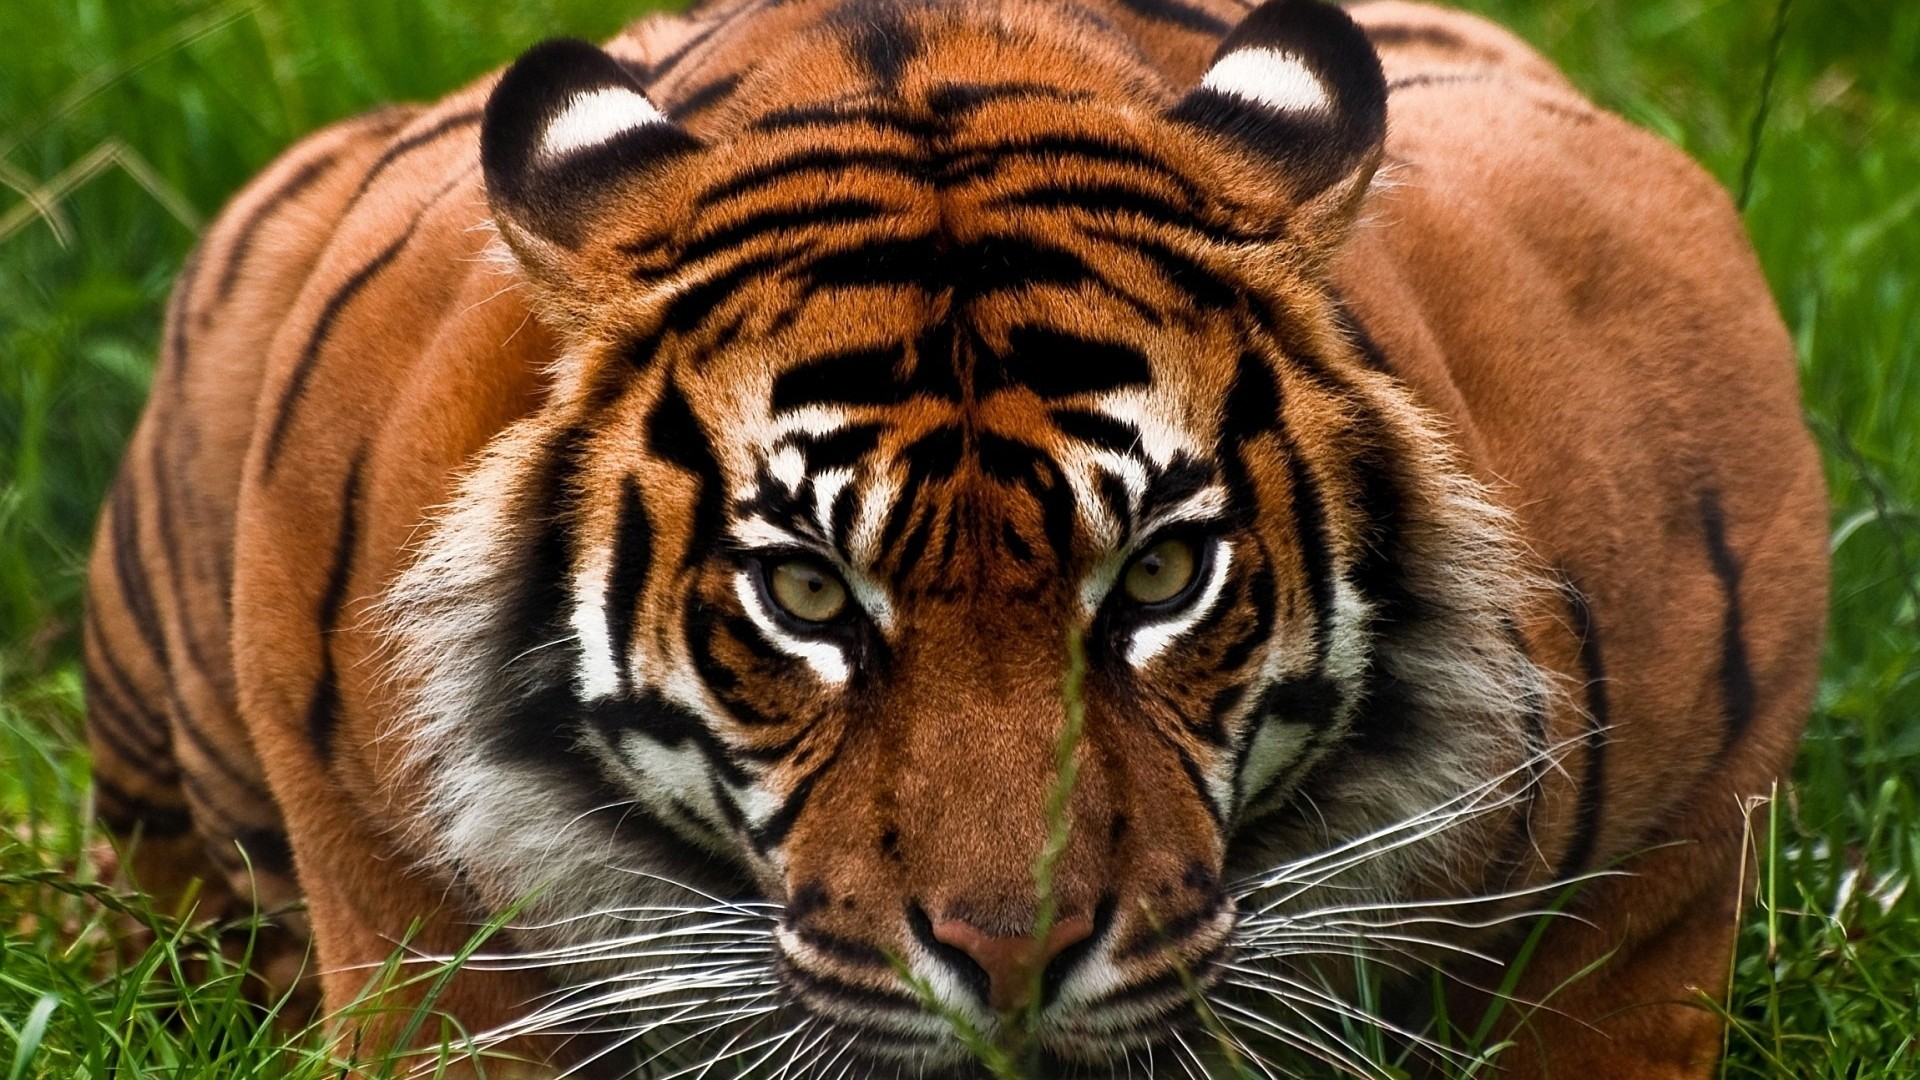 … Background Full HD 1080p. Wallpaper tiger, face, aggression,  animal